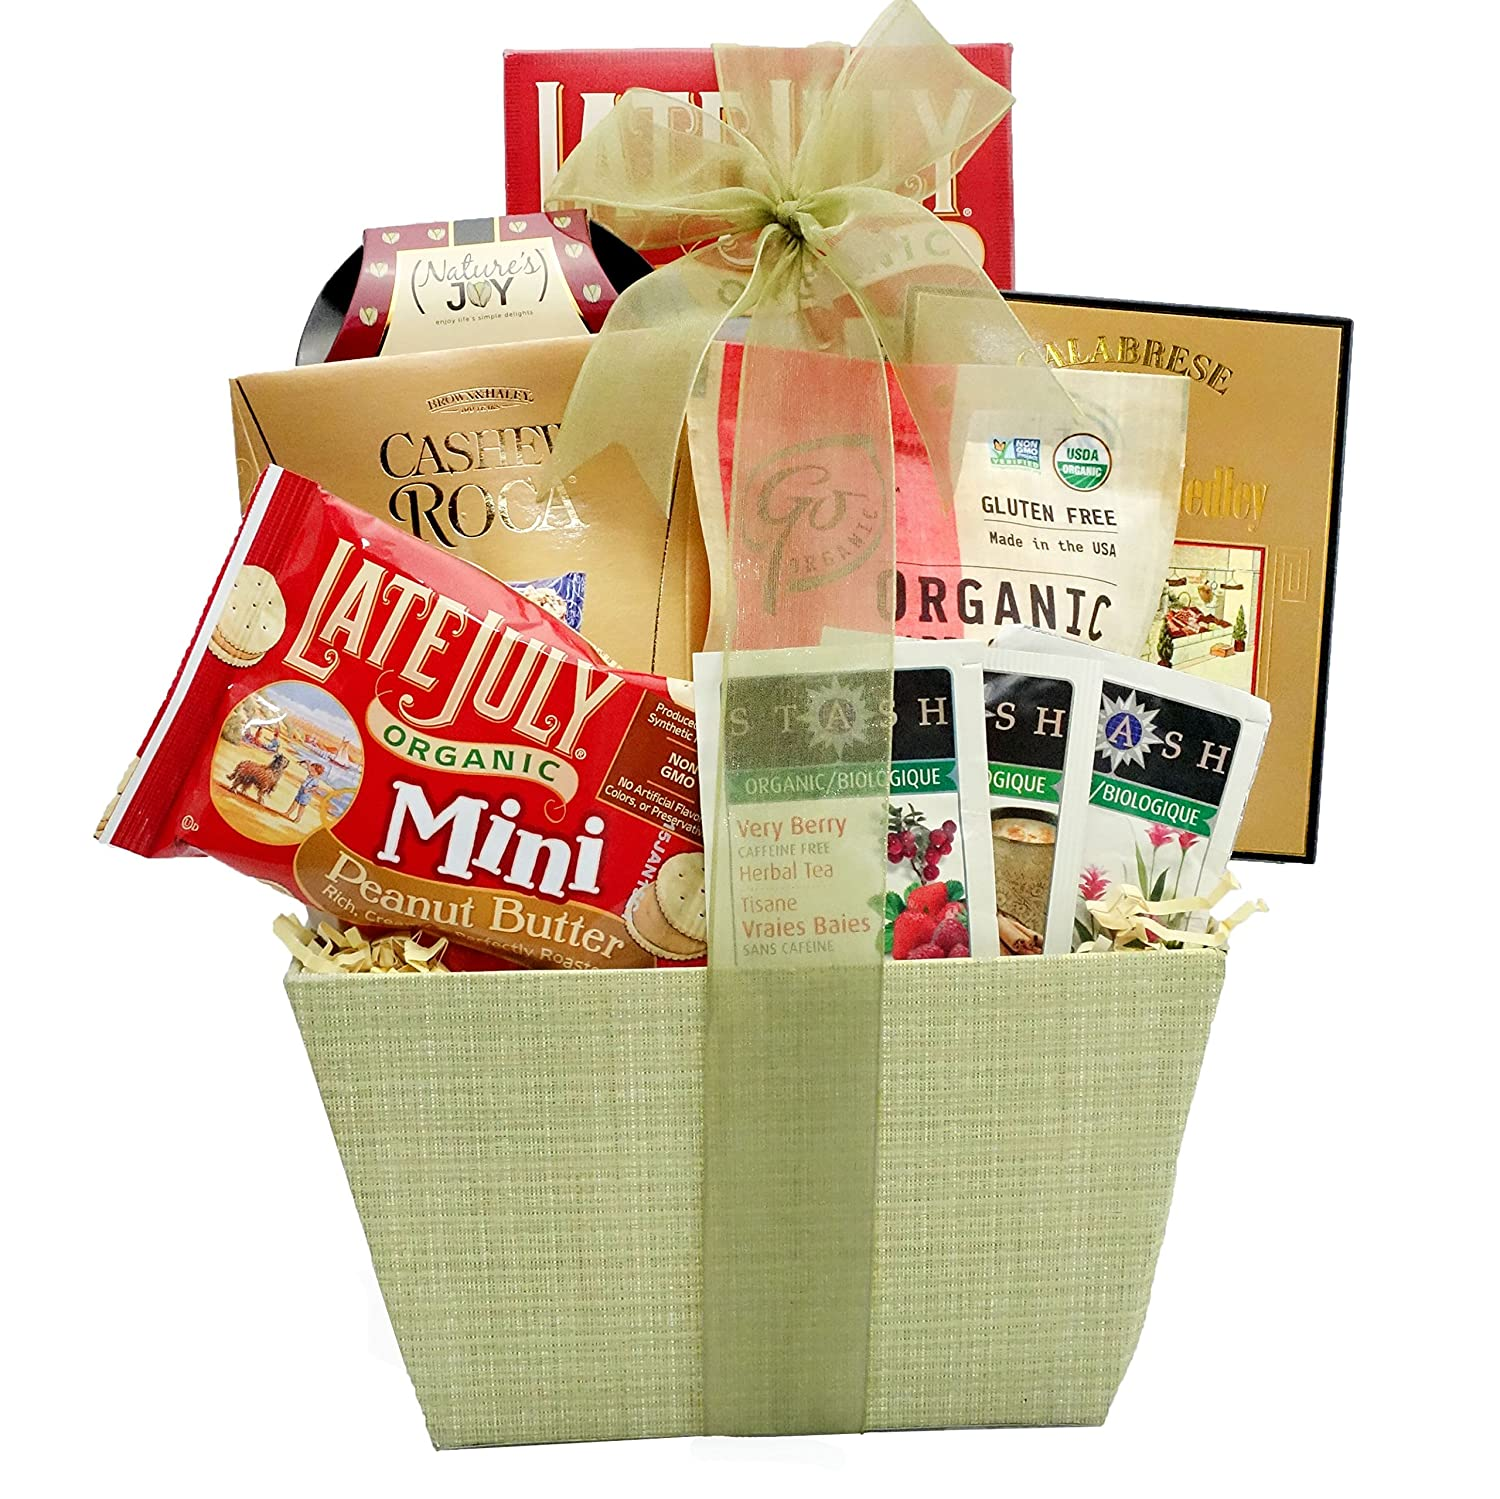 Amazon broadway basketeers organic and natural healthy gift amazon broadway basketeers organic and natural healthy gift basket a healthy gift basket gourmet snacks and hors doeuvres gifts grocery negle Image collections